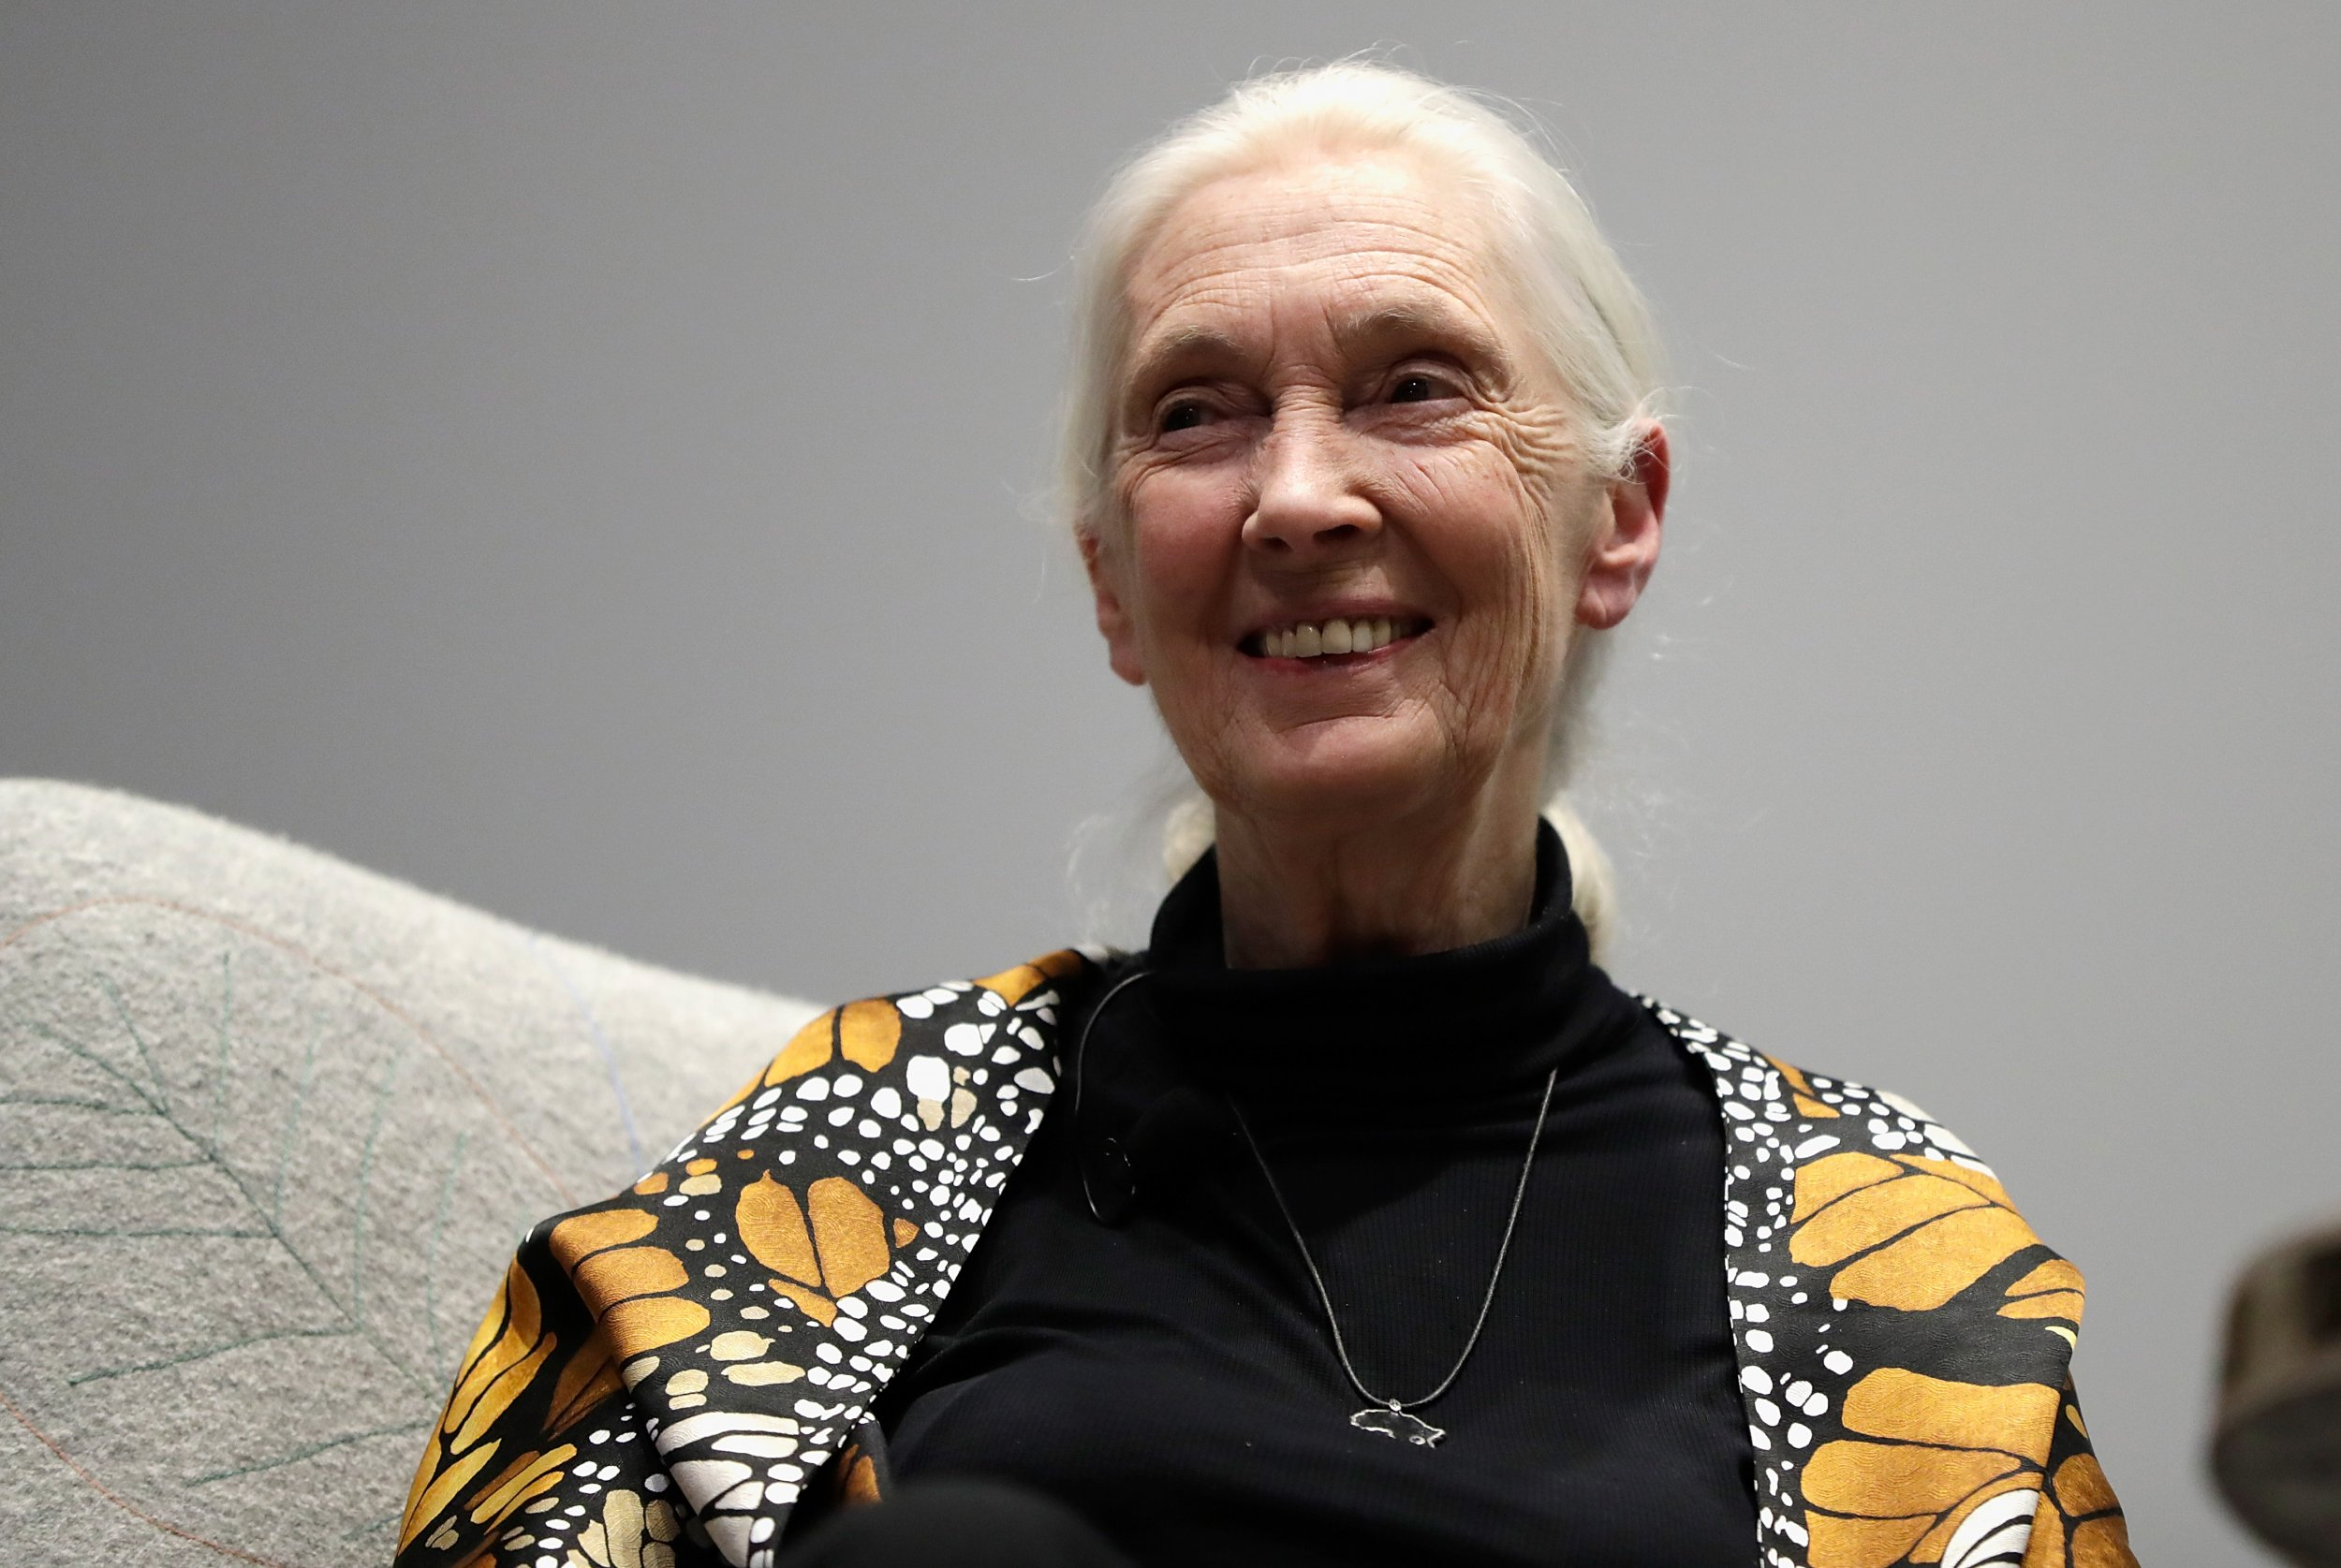 Jane Goodall on Trump's primate behavior